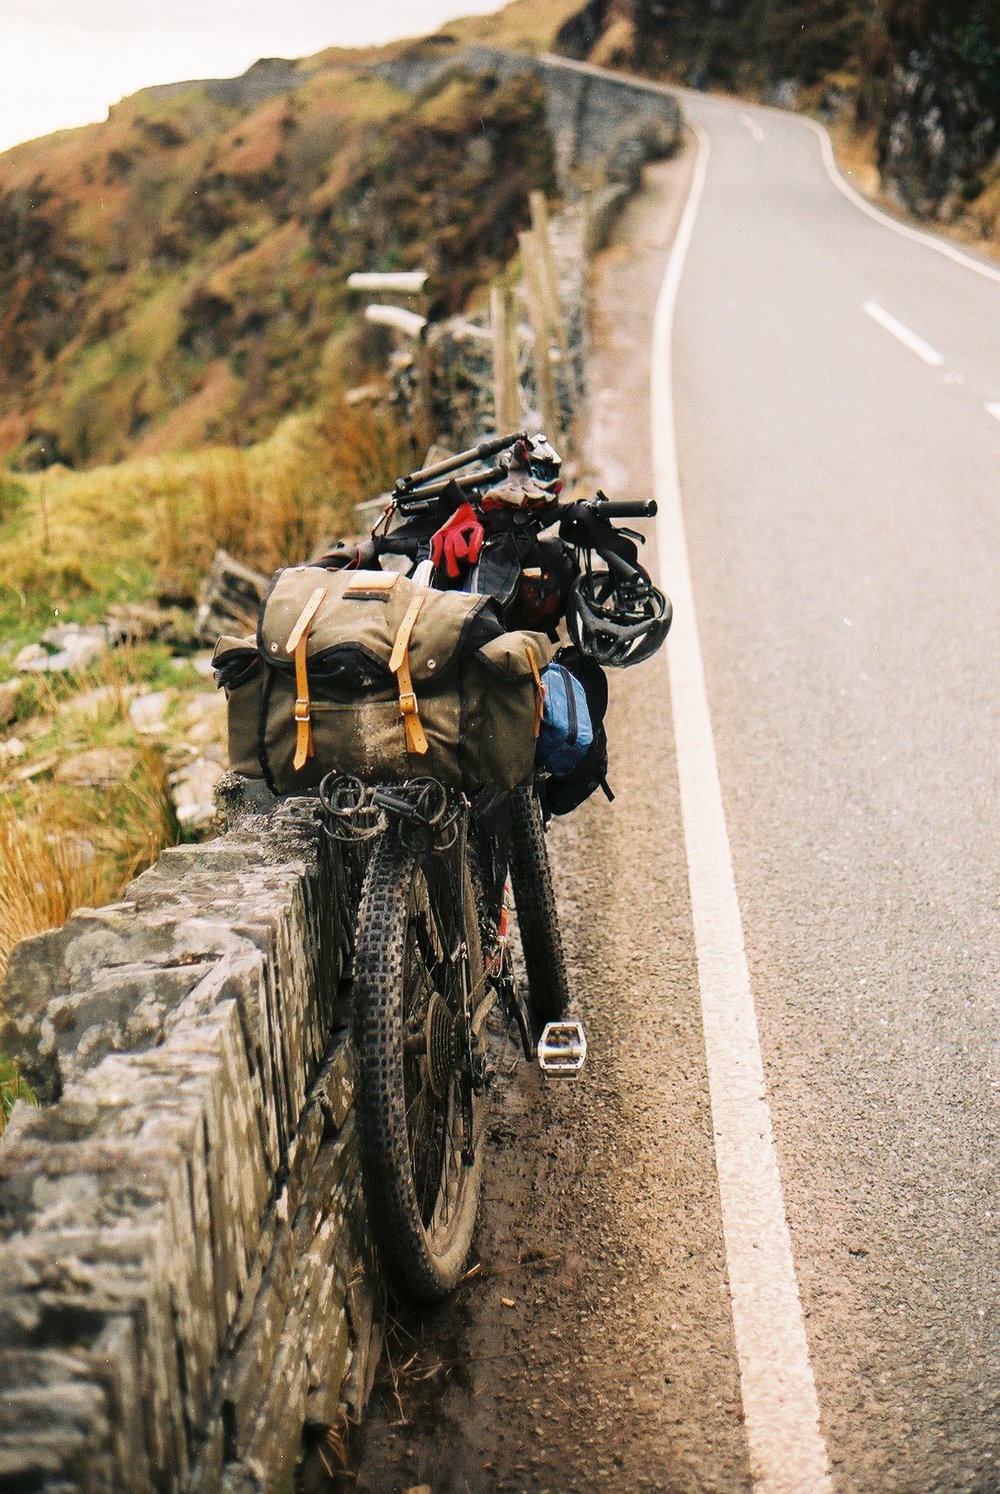 surly, surly ecr, wildcat gear, bikepacking blog, bicycle touring apocalypse, canon, canon ae1, travel blog, revelate designs, jack macgowan, trangia, klean kanteen, 29er, fat bike, bicycle touring, cycle touring, adventure cycling, trip by bike, explore, knards, canon, canon 6d, canon ae1, 35mm, film camera, film photography carradice, carradice longflap camper